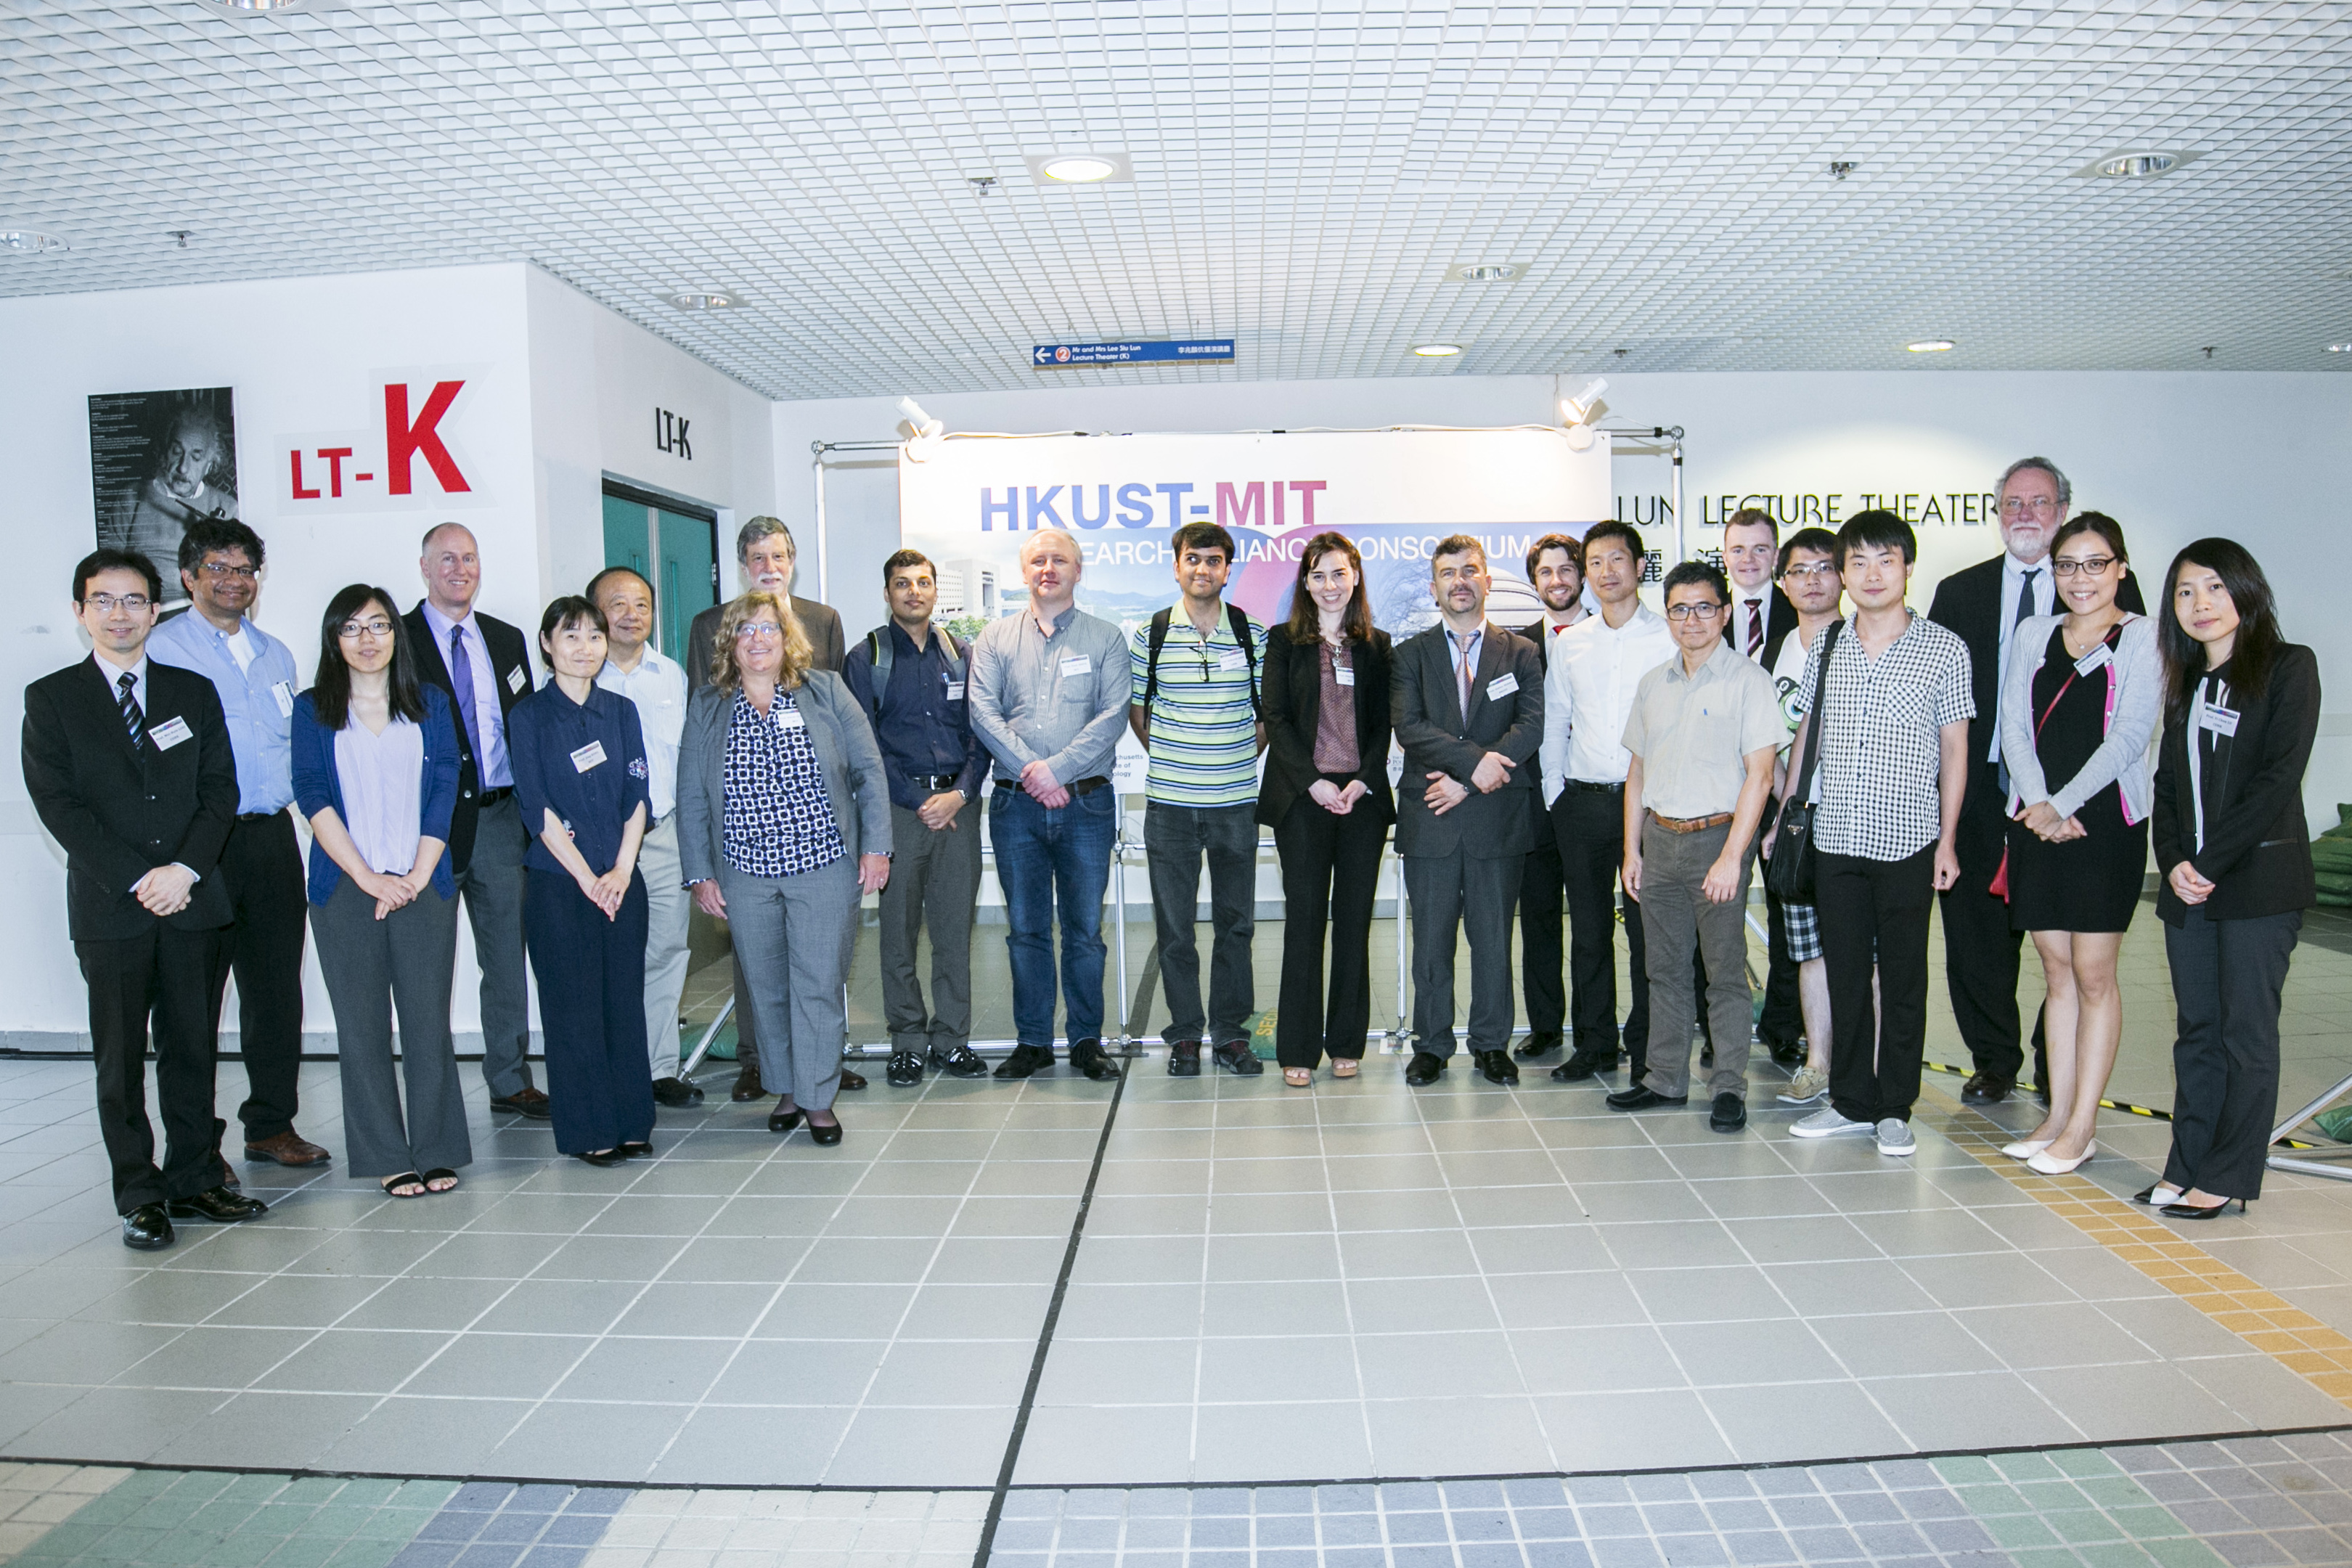 HKU_Res_All_Con_Sem_P13991_03_024